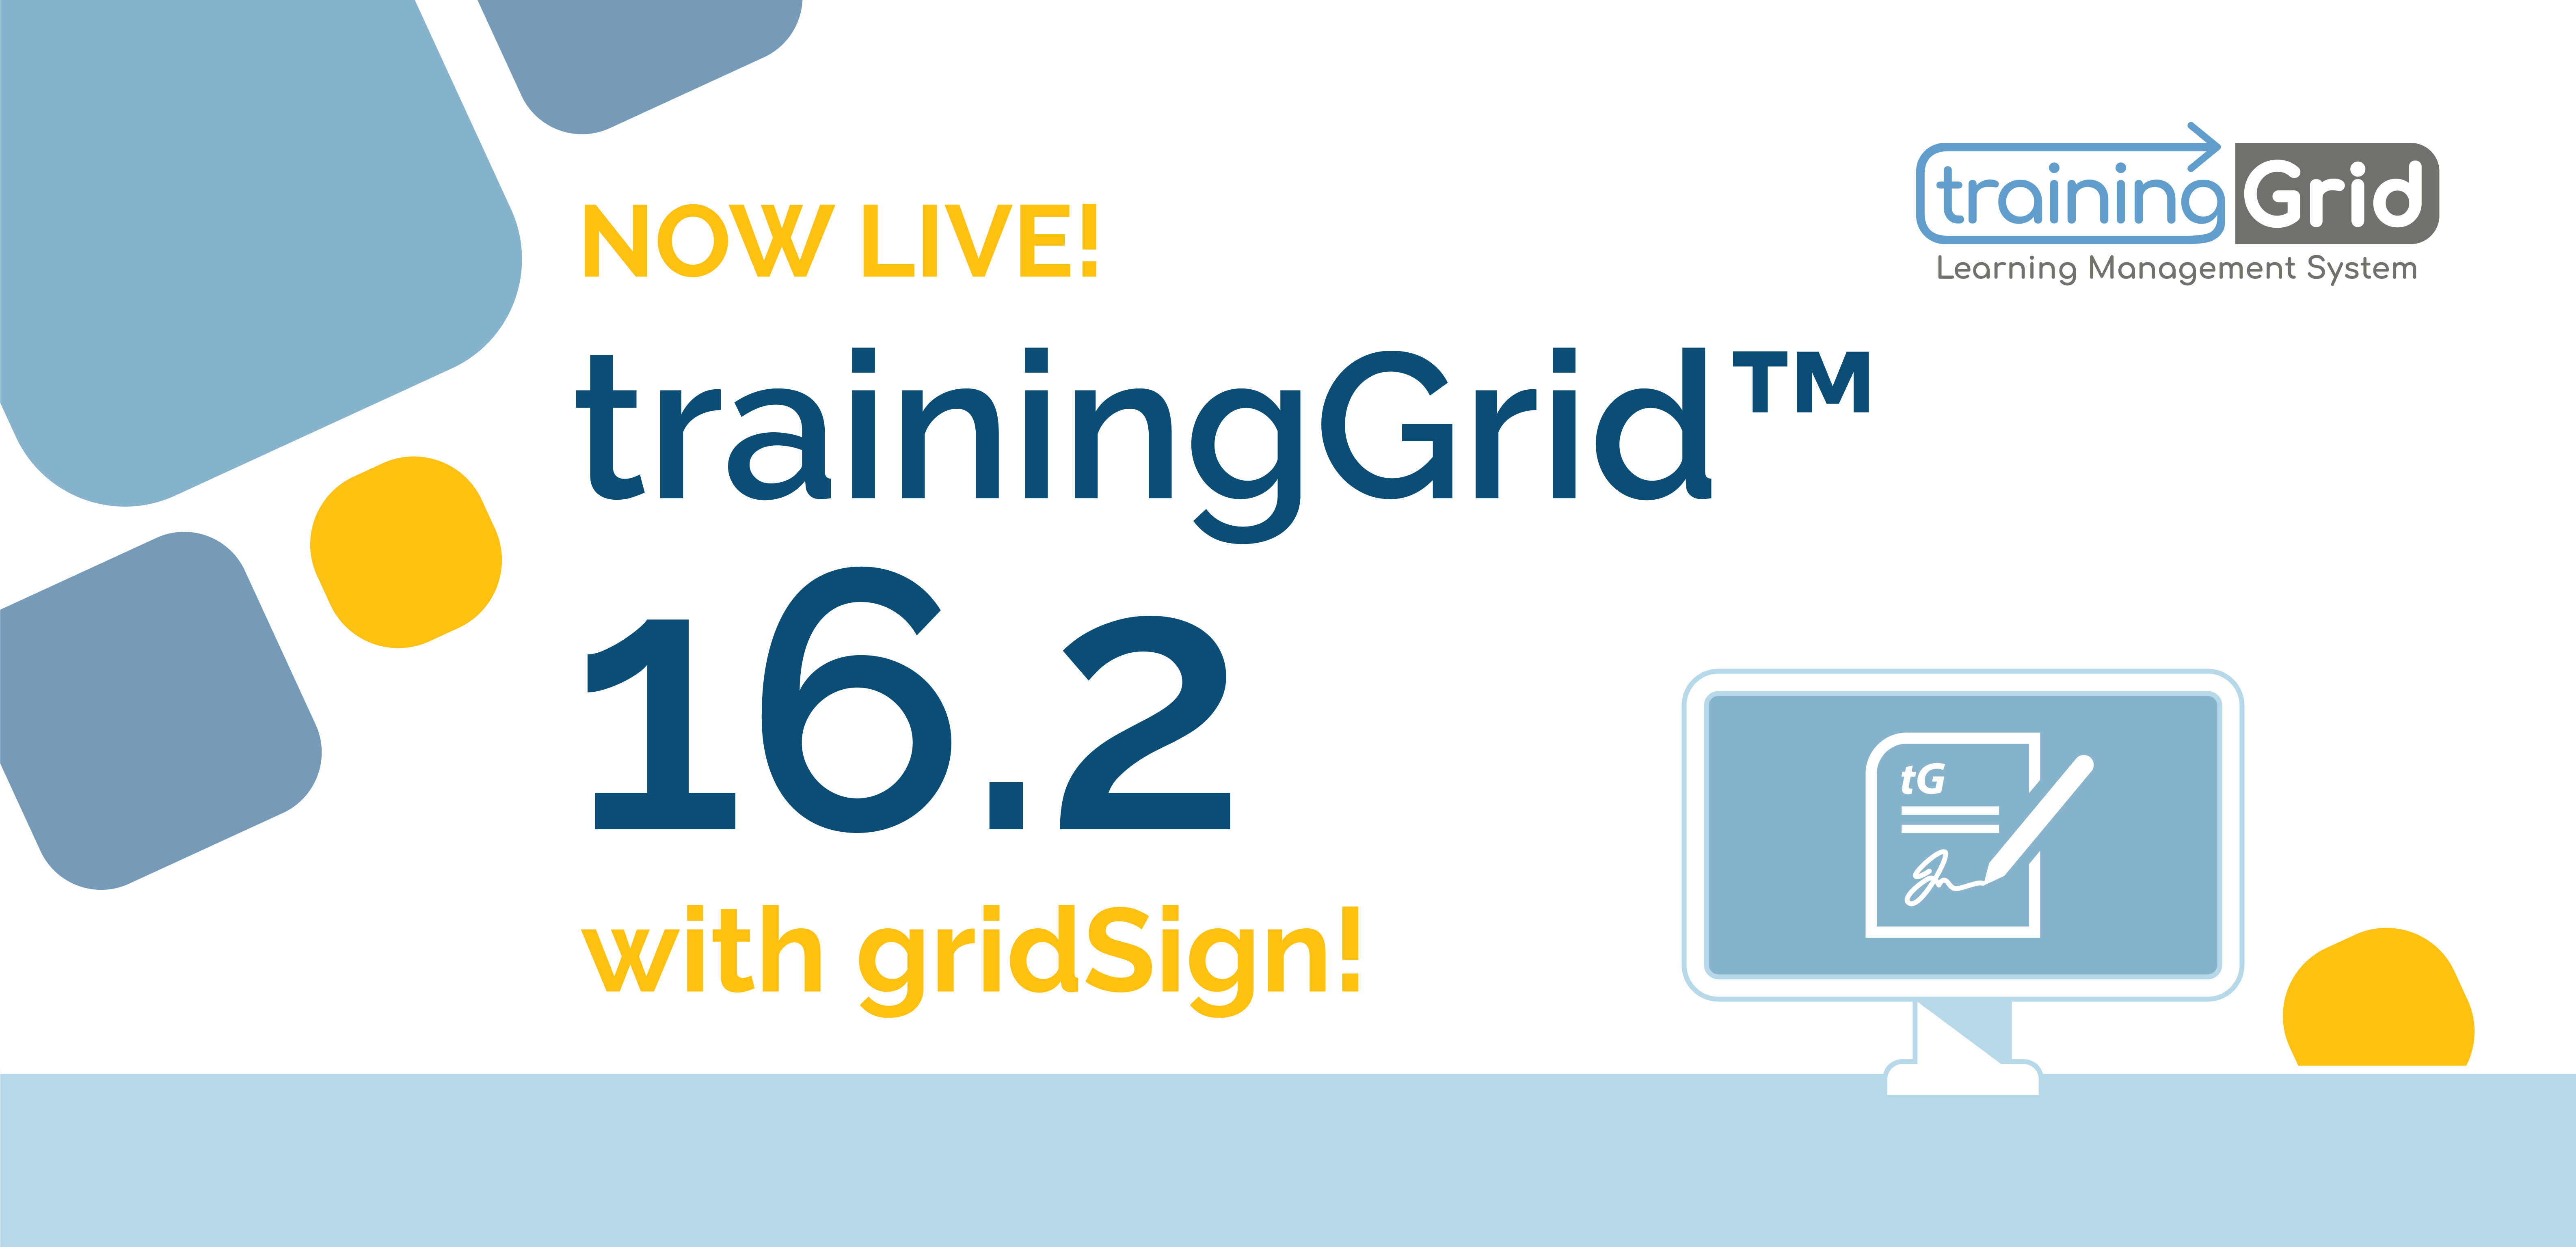 gridSign by trainingGrid is now live!